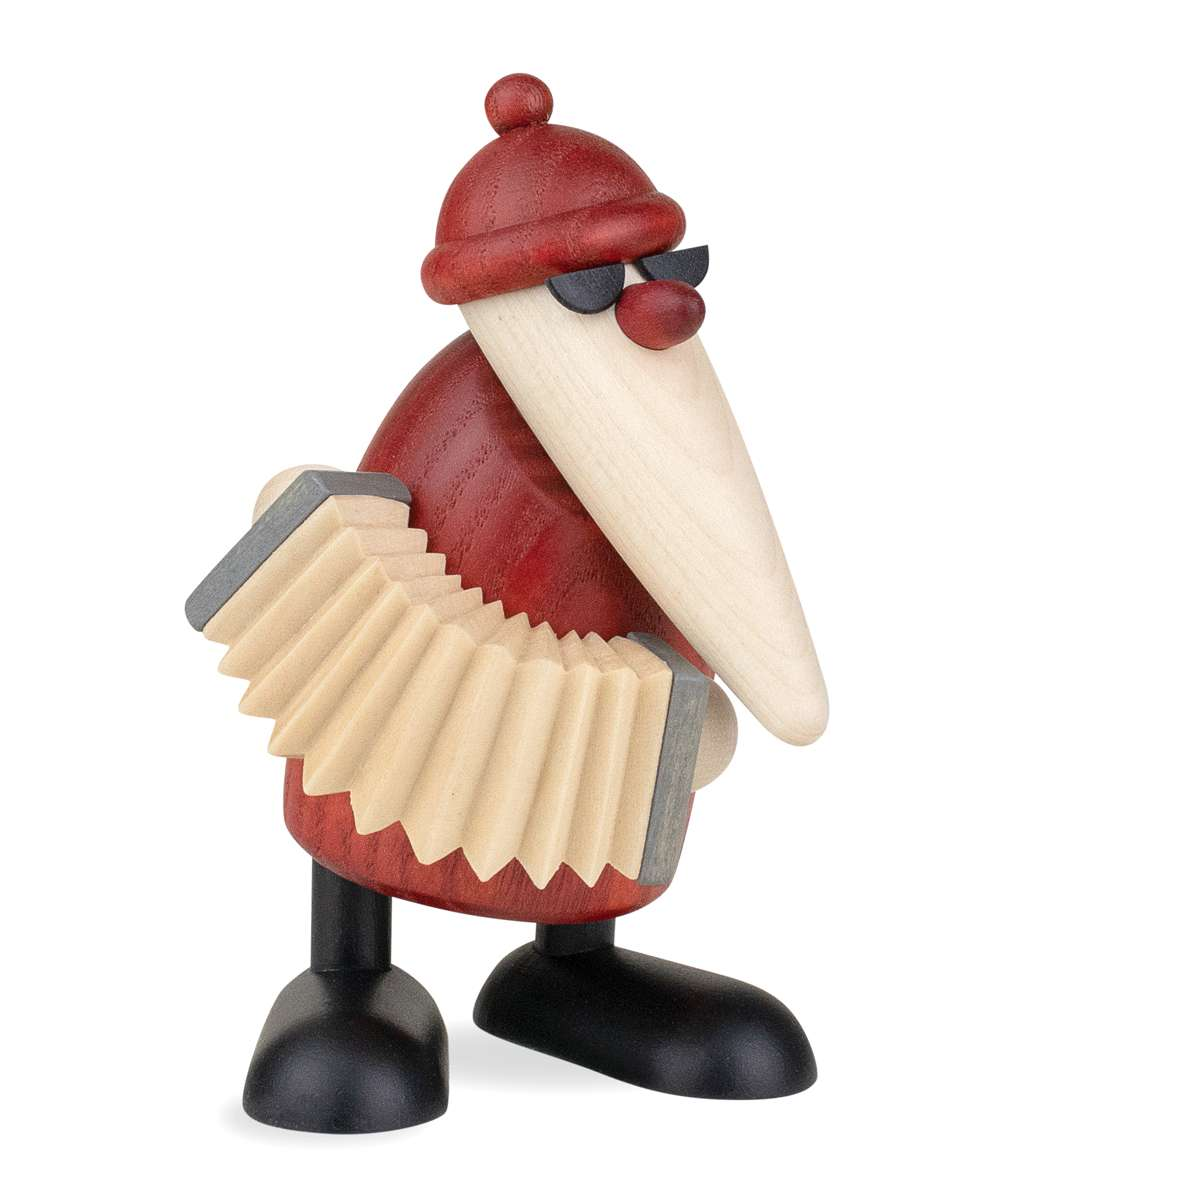 Bjoern Koehler Kunsthandwerk - NEW: Santa Claus playing the accordion, small